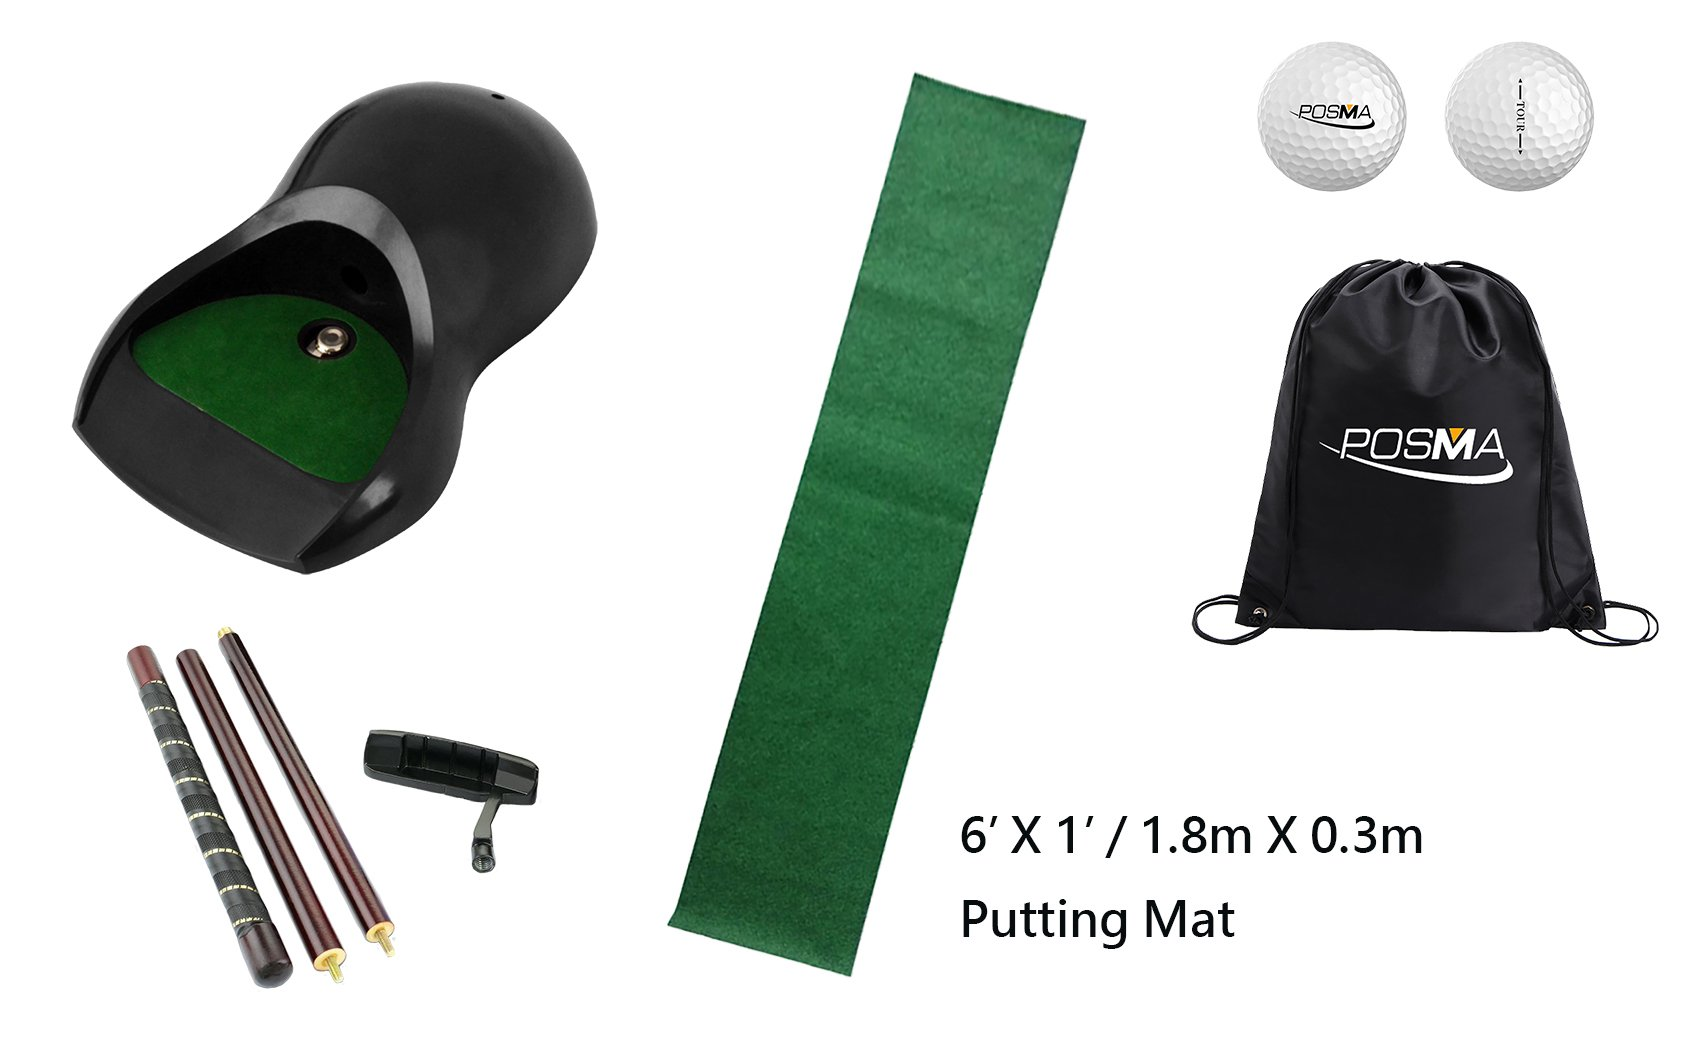 Posma PG160D Golf Putter Training Putting Trainer Bundle Gift Set with Kickback Putt Cup, 6ft x 1ft Putt Mat, Detachable 4-section putter, 2pcs Posma Tour Ball and Posma Cinch Sack Carry Bag by POSMA (Image #1)